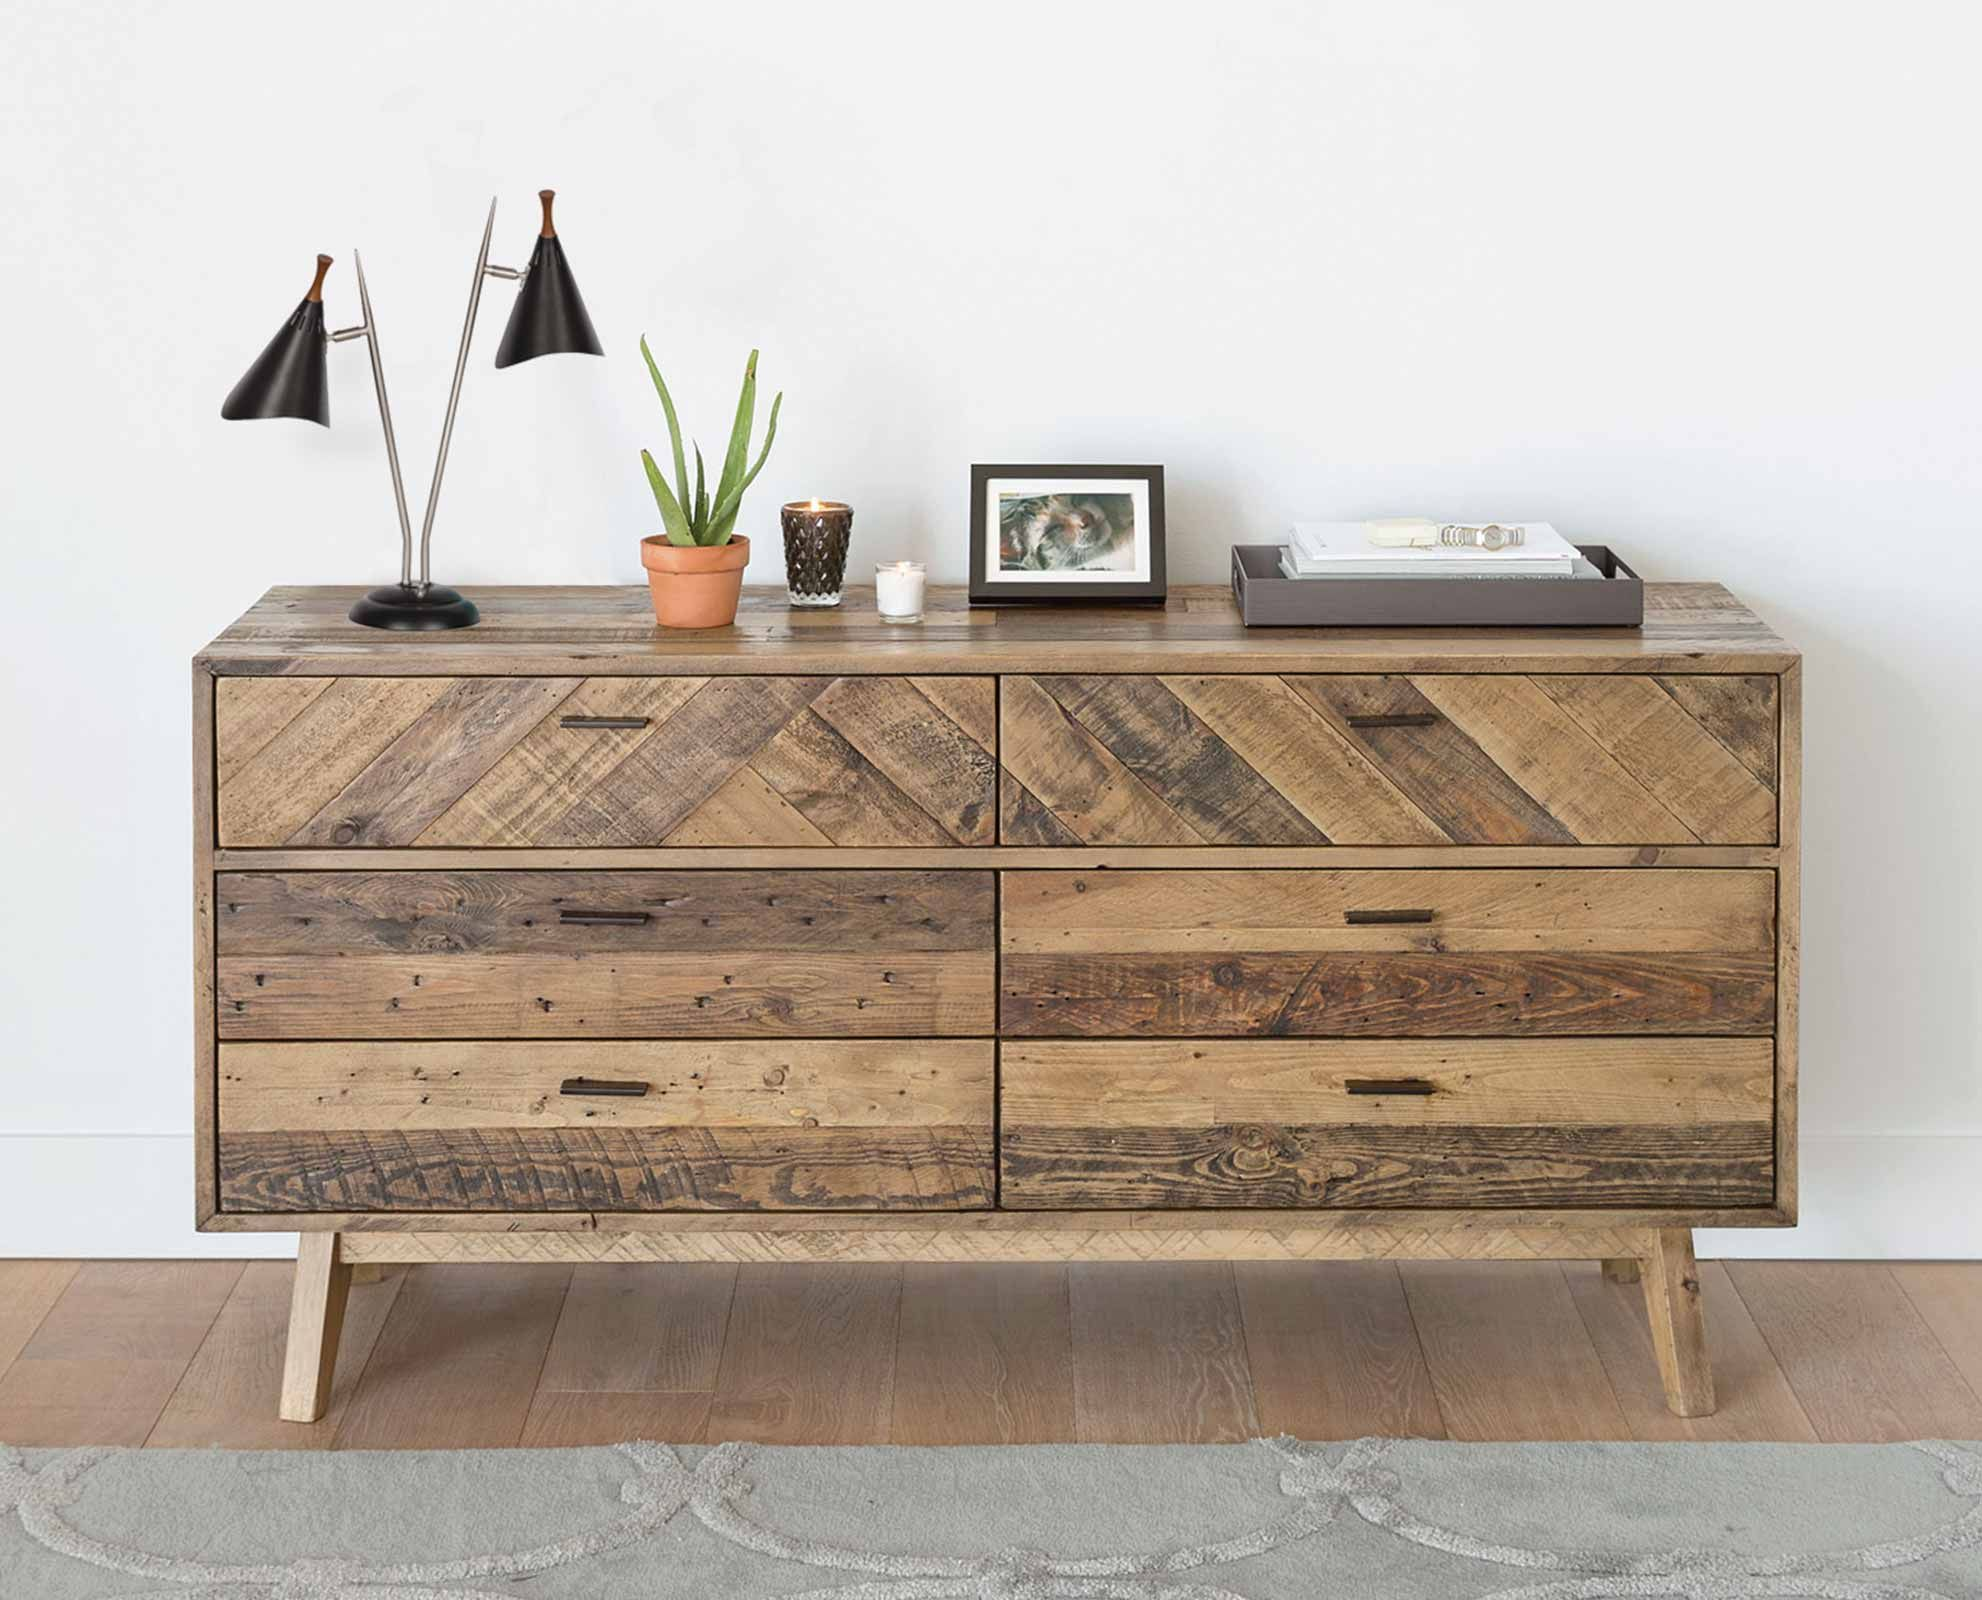 Asunto Double Dresser From Scandinavian Designs Truly Distinctive With Its Eye Catching Cozy Bedroom Furniture Scandinavian Chest Of Drawers Bedroom Furniture